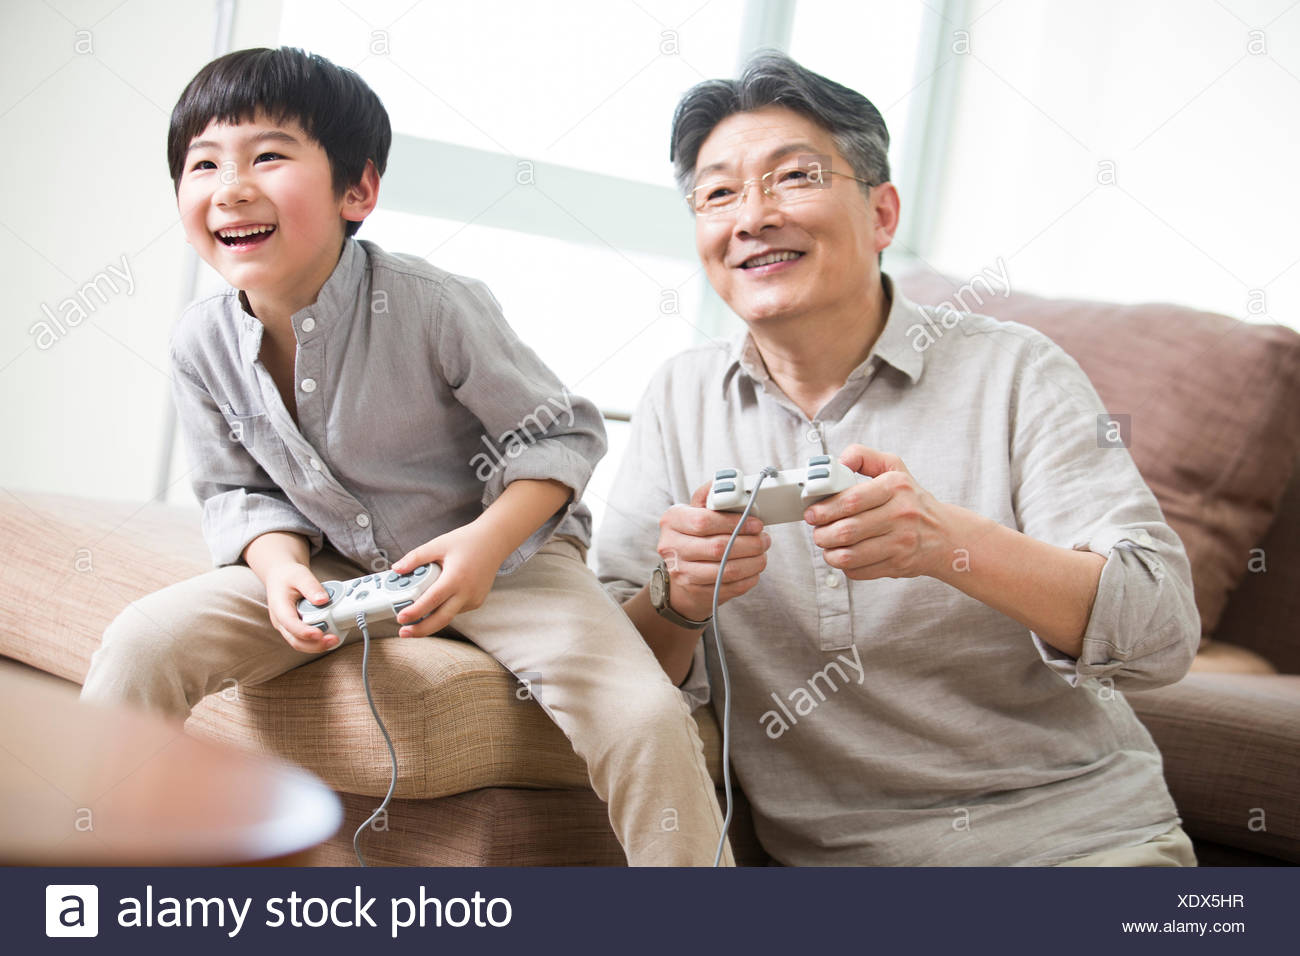 Cheerful grandfather and grandson playing video game Stock Photo